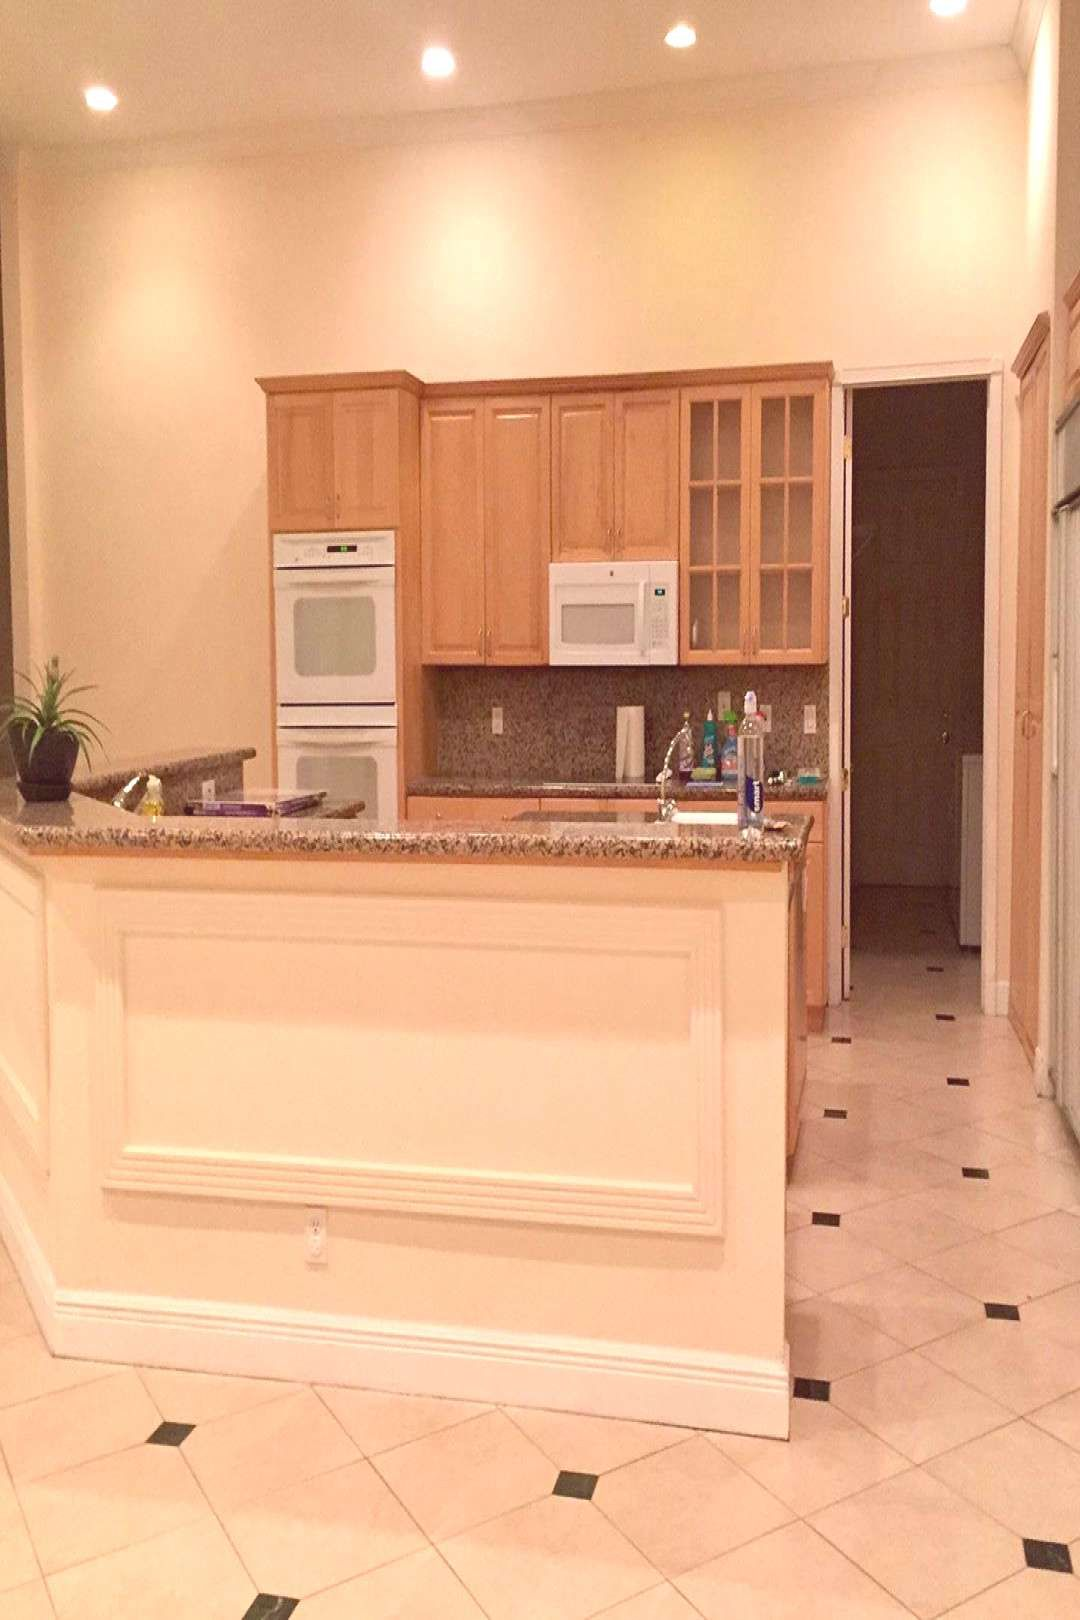 #cabinets #kitchen #before #indoor #after #fresh #give # ...